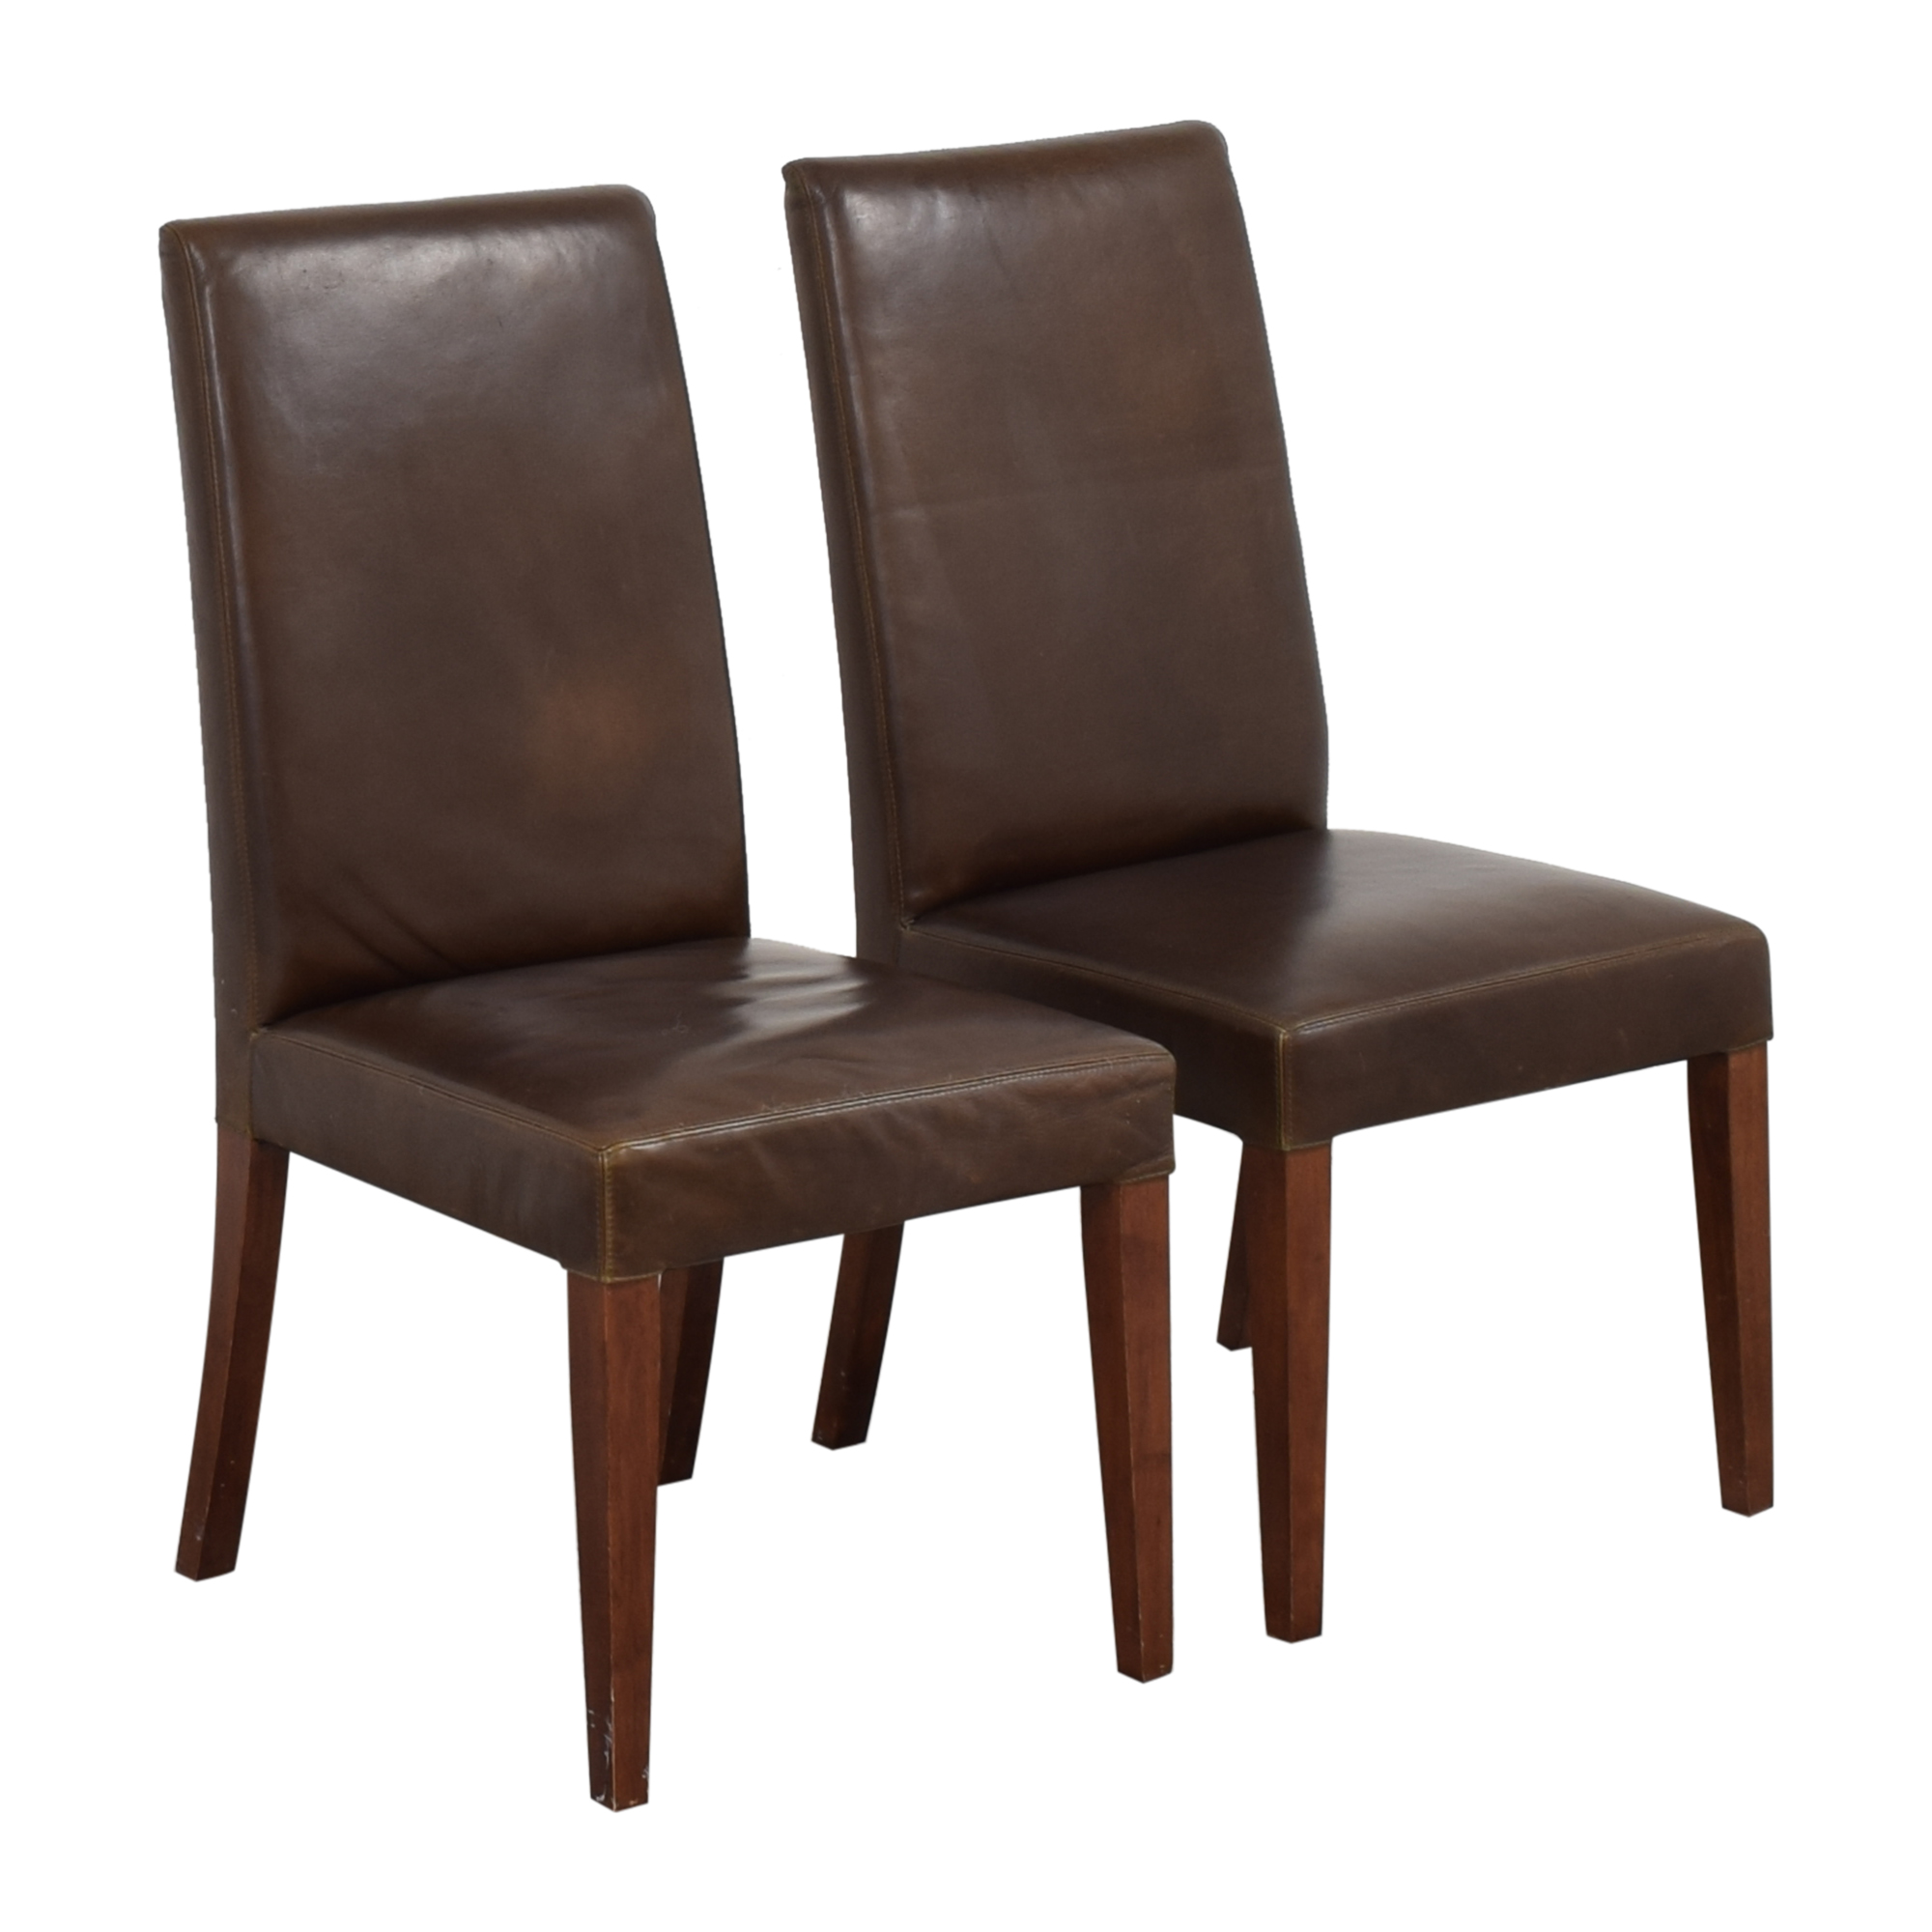 Pottery Barn Pottery Barn Grayson Dining Side Chairs for sale